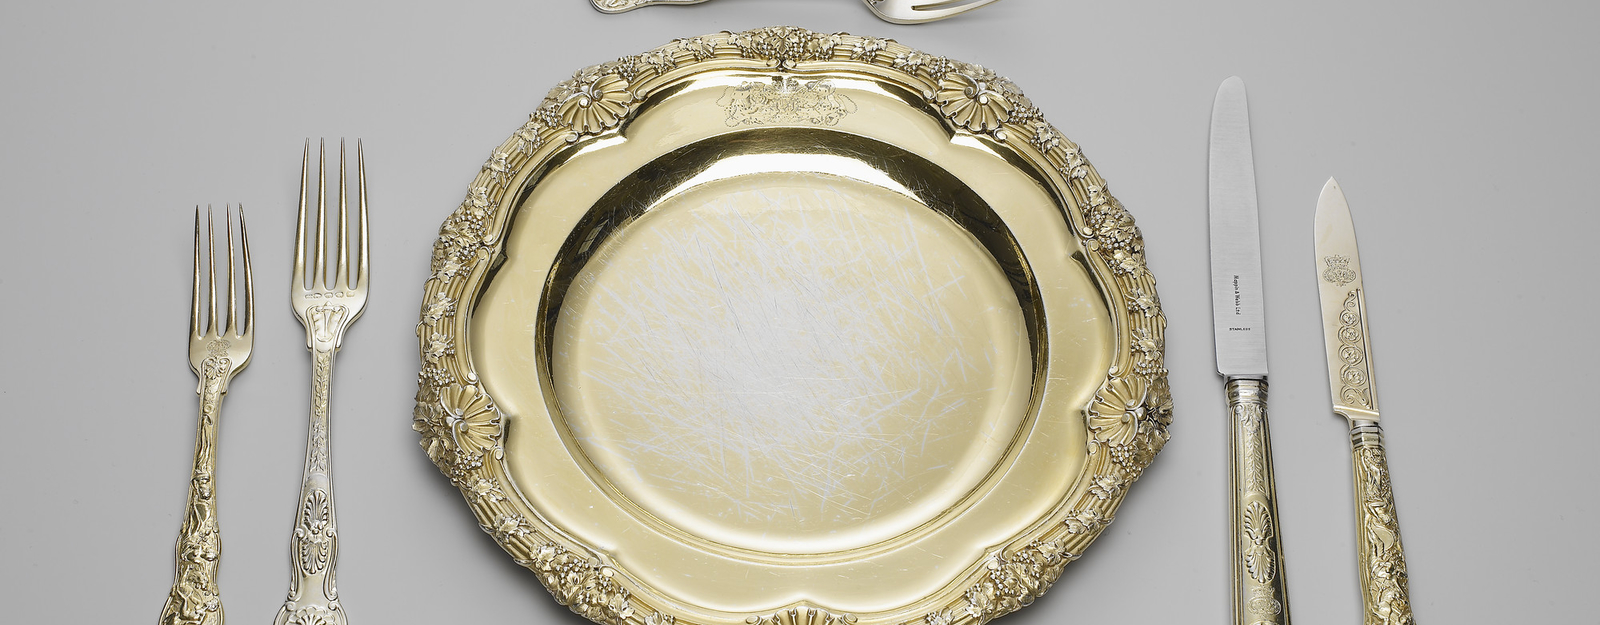 A set of silver-gilt plates; the reeded rim cast with fruiting vines and scallop shells. The plate is engraved with the Royal coat of arms, with supporters, mantling and coronet.